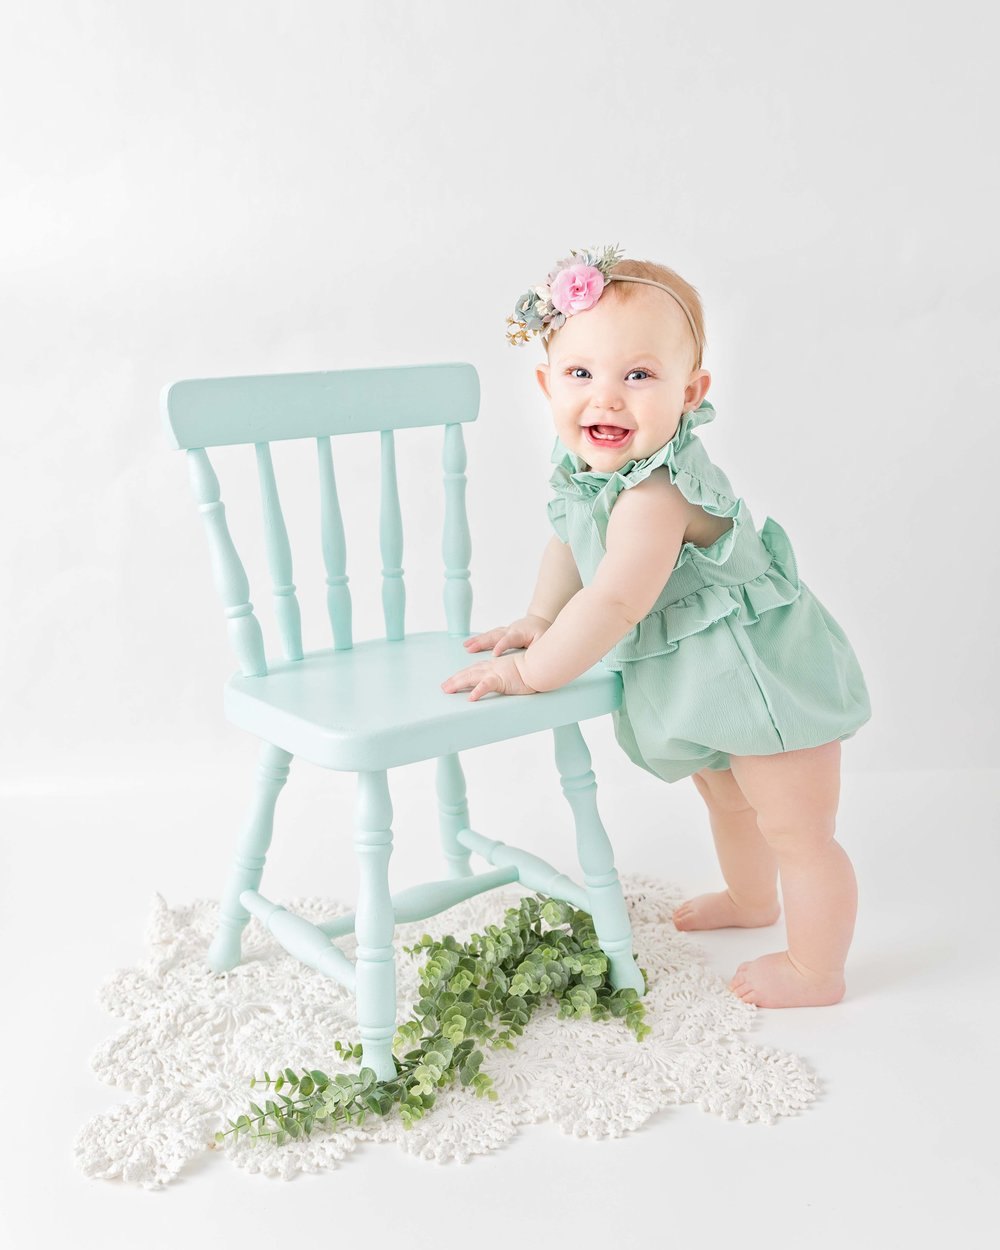 Milesonte-photos-baby-images-photoshoot-nine-month-pictures-professional-photographer-newborn.jpg